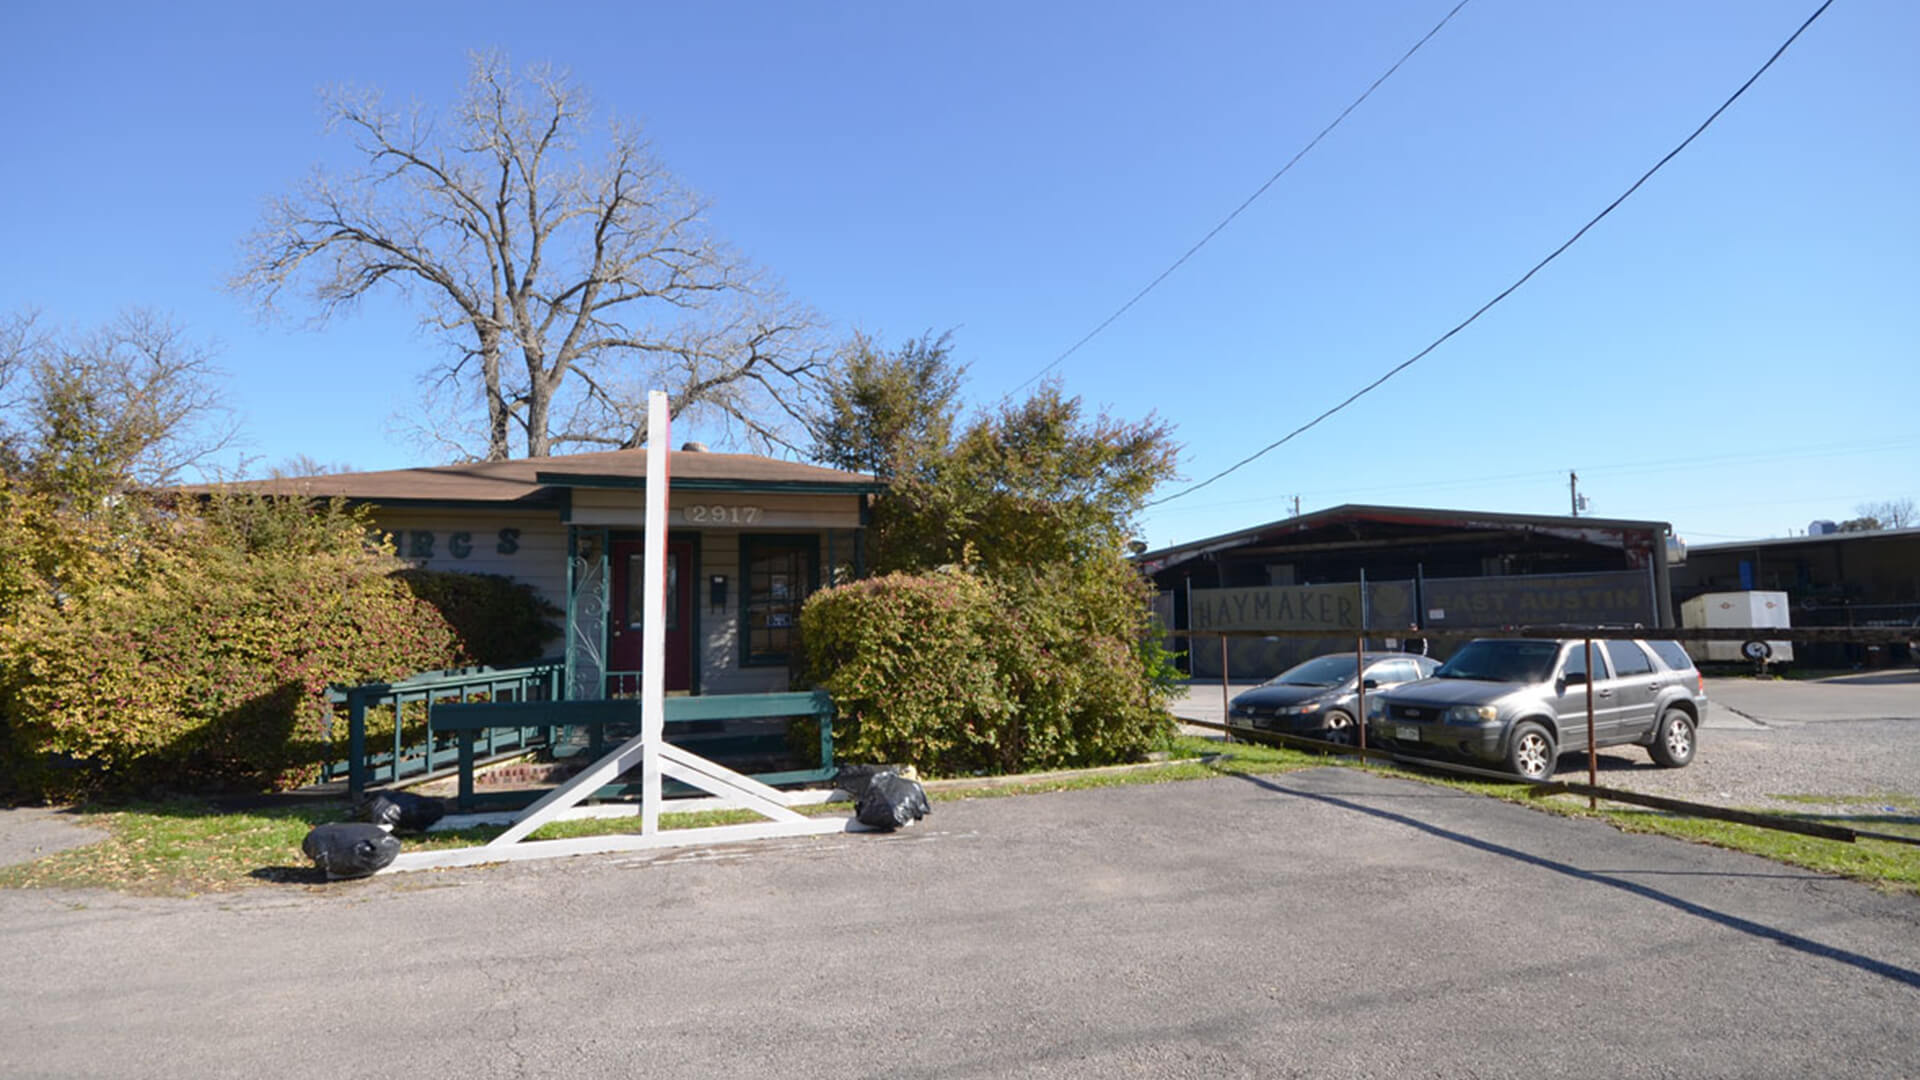 2917 Cherrywood Rd Mixed-Use Building